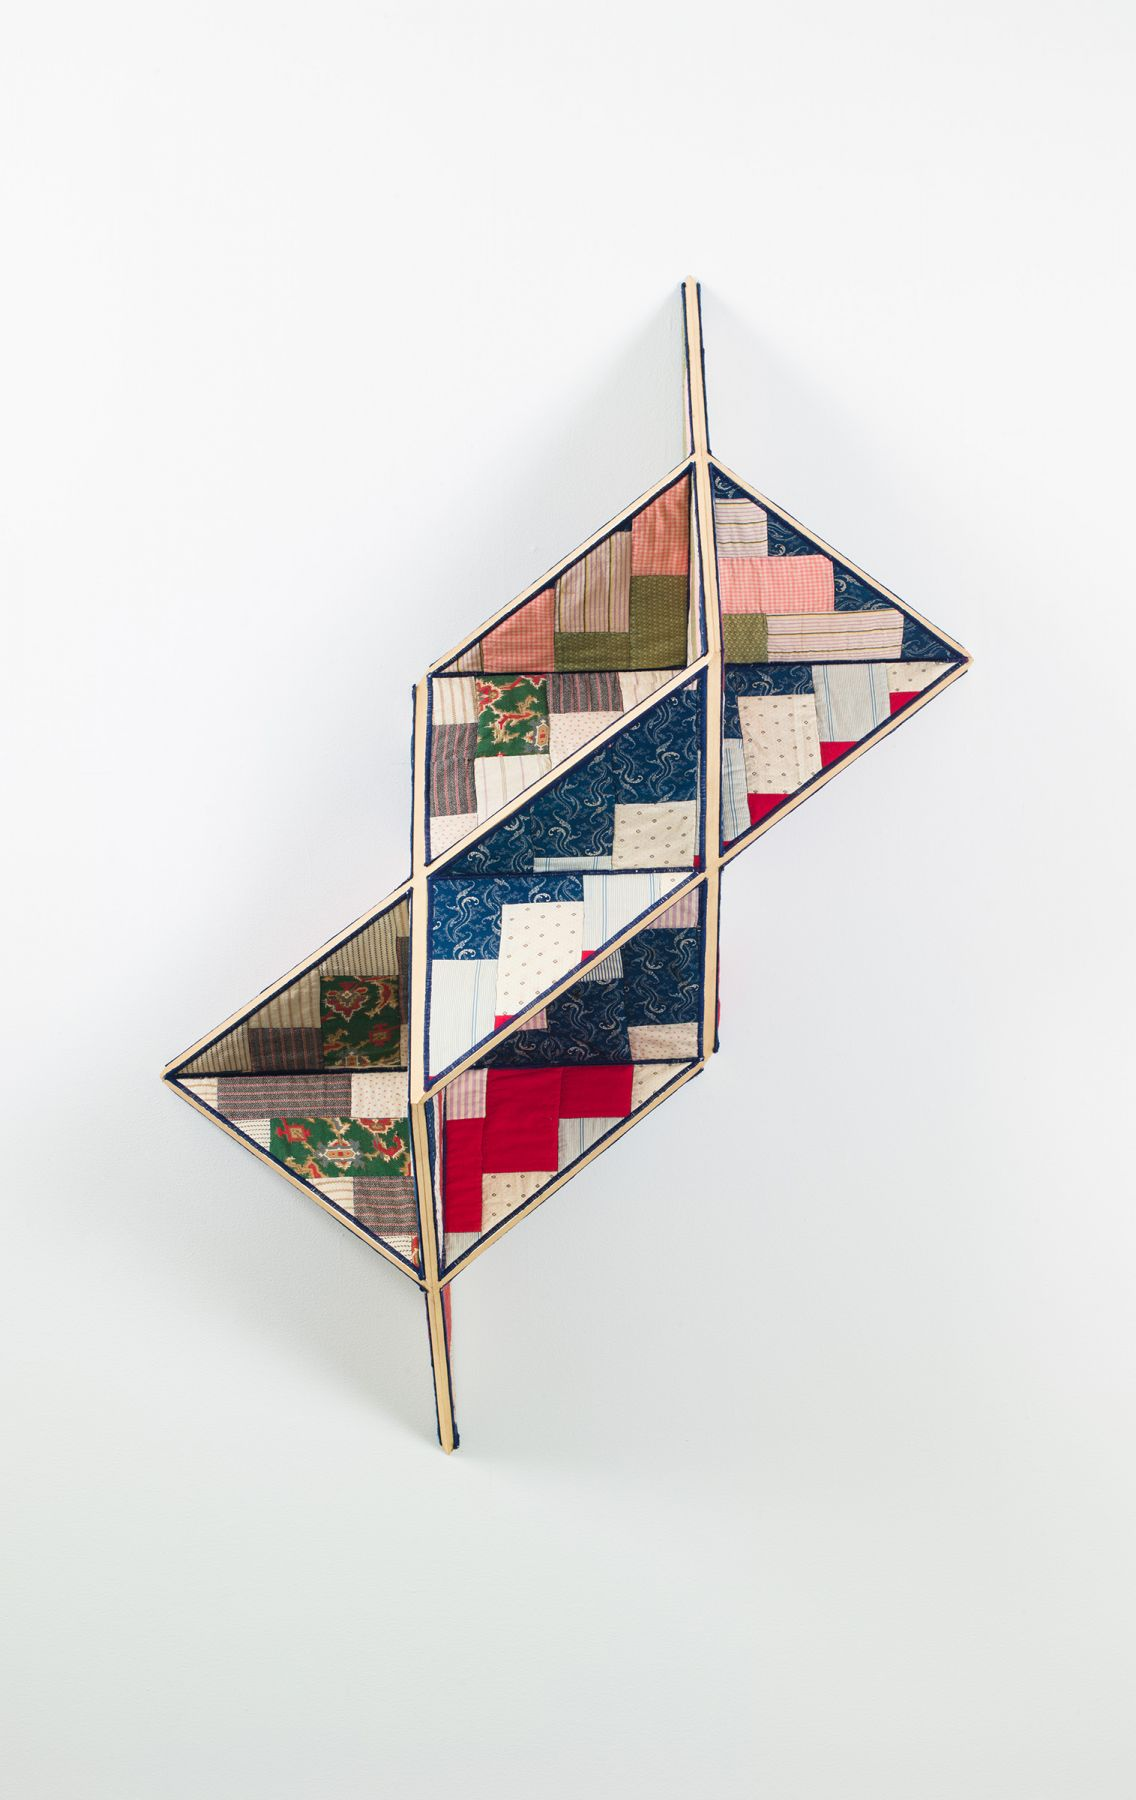 an antique quilt work by Sanford Biggers for sale